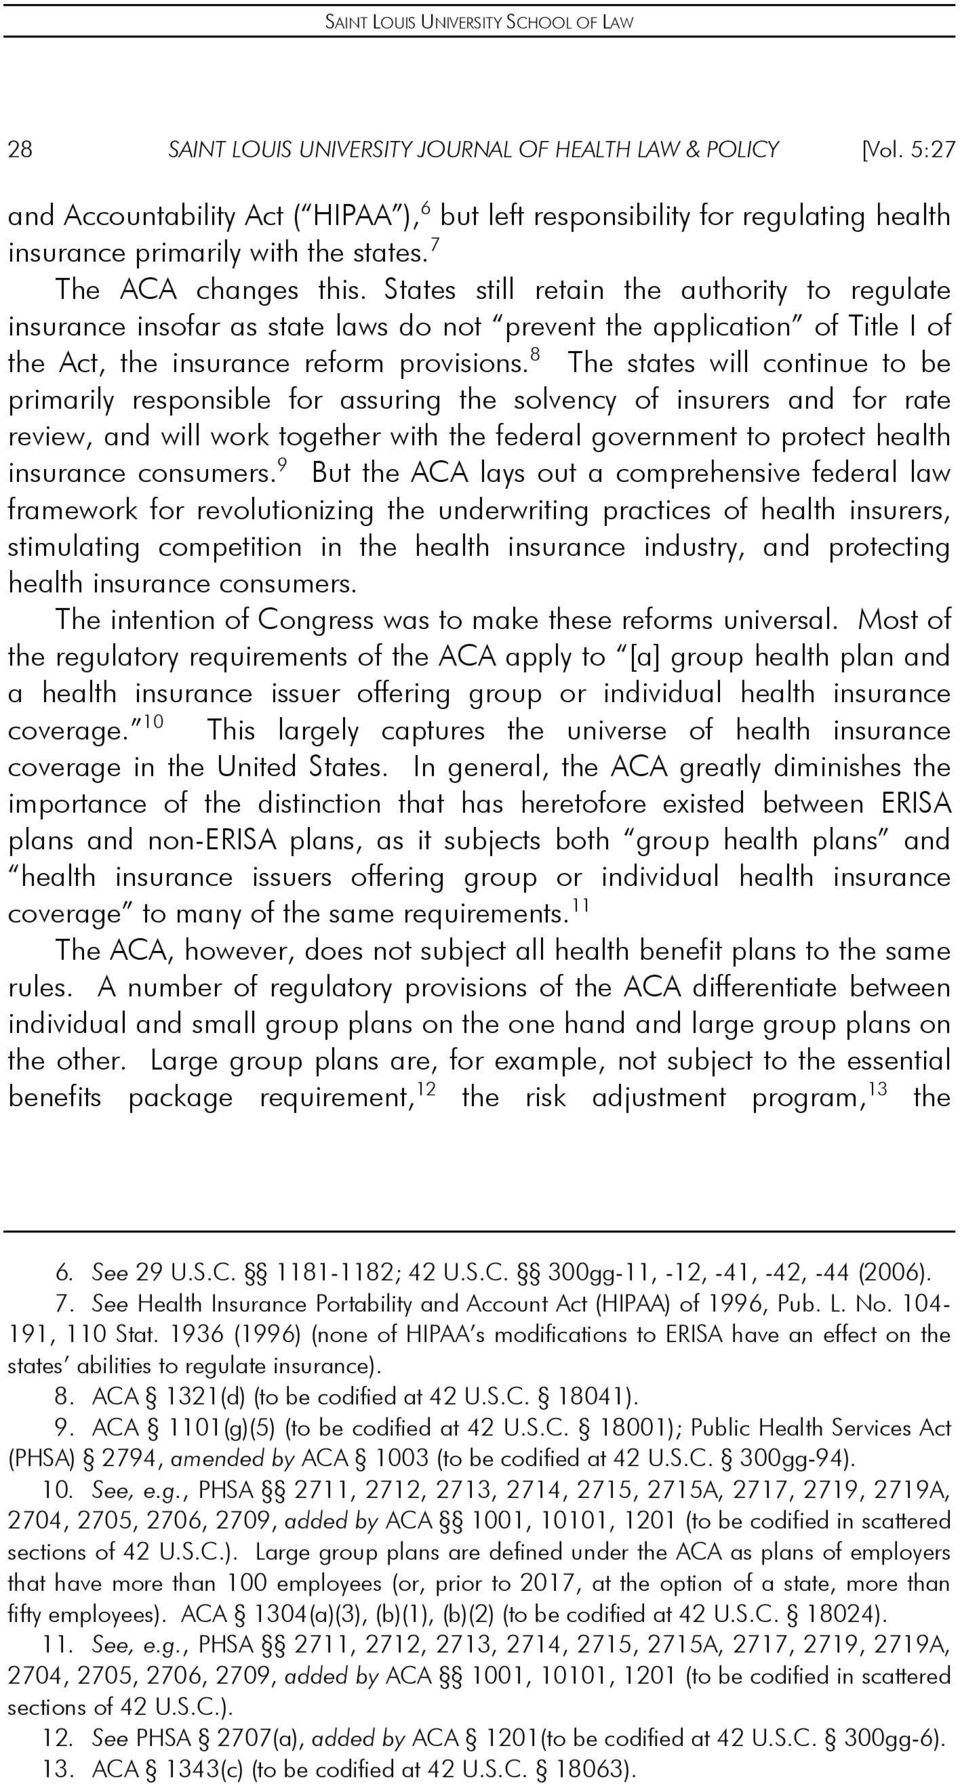 8 The states will continue to be primarily responsible for assuring the solvency of insurers and for rate review, and will work together with the federal government to protect health insurance